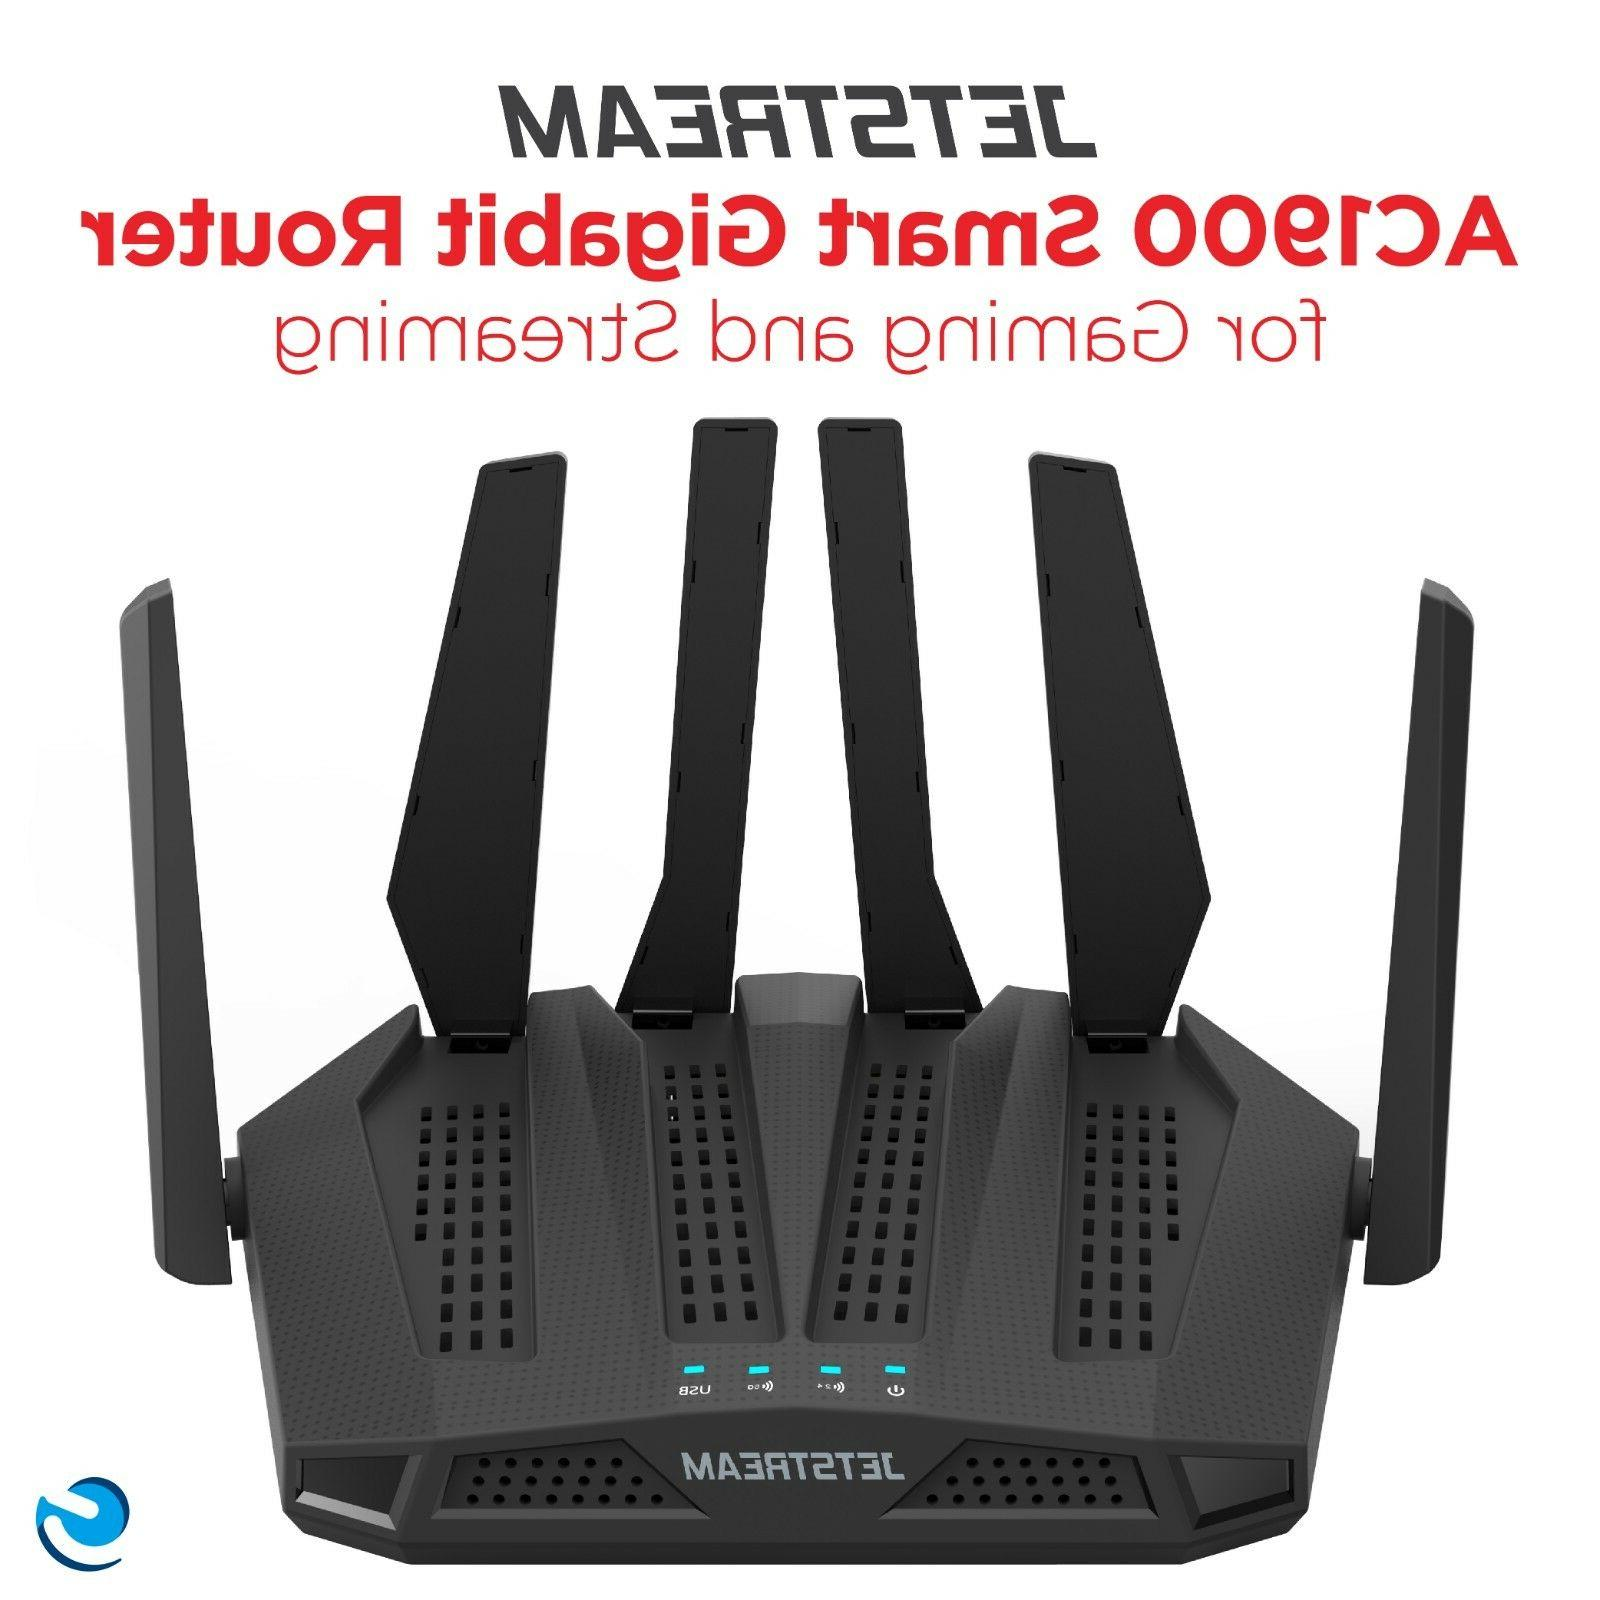 Dual Gaming Router 3000 sq ft. Network Internet LAN